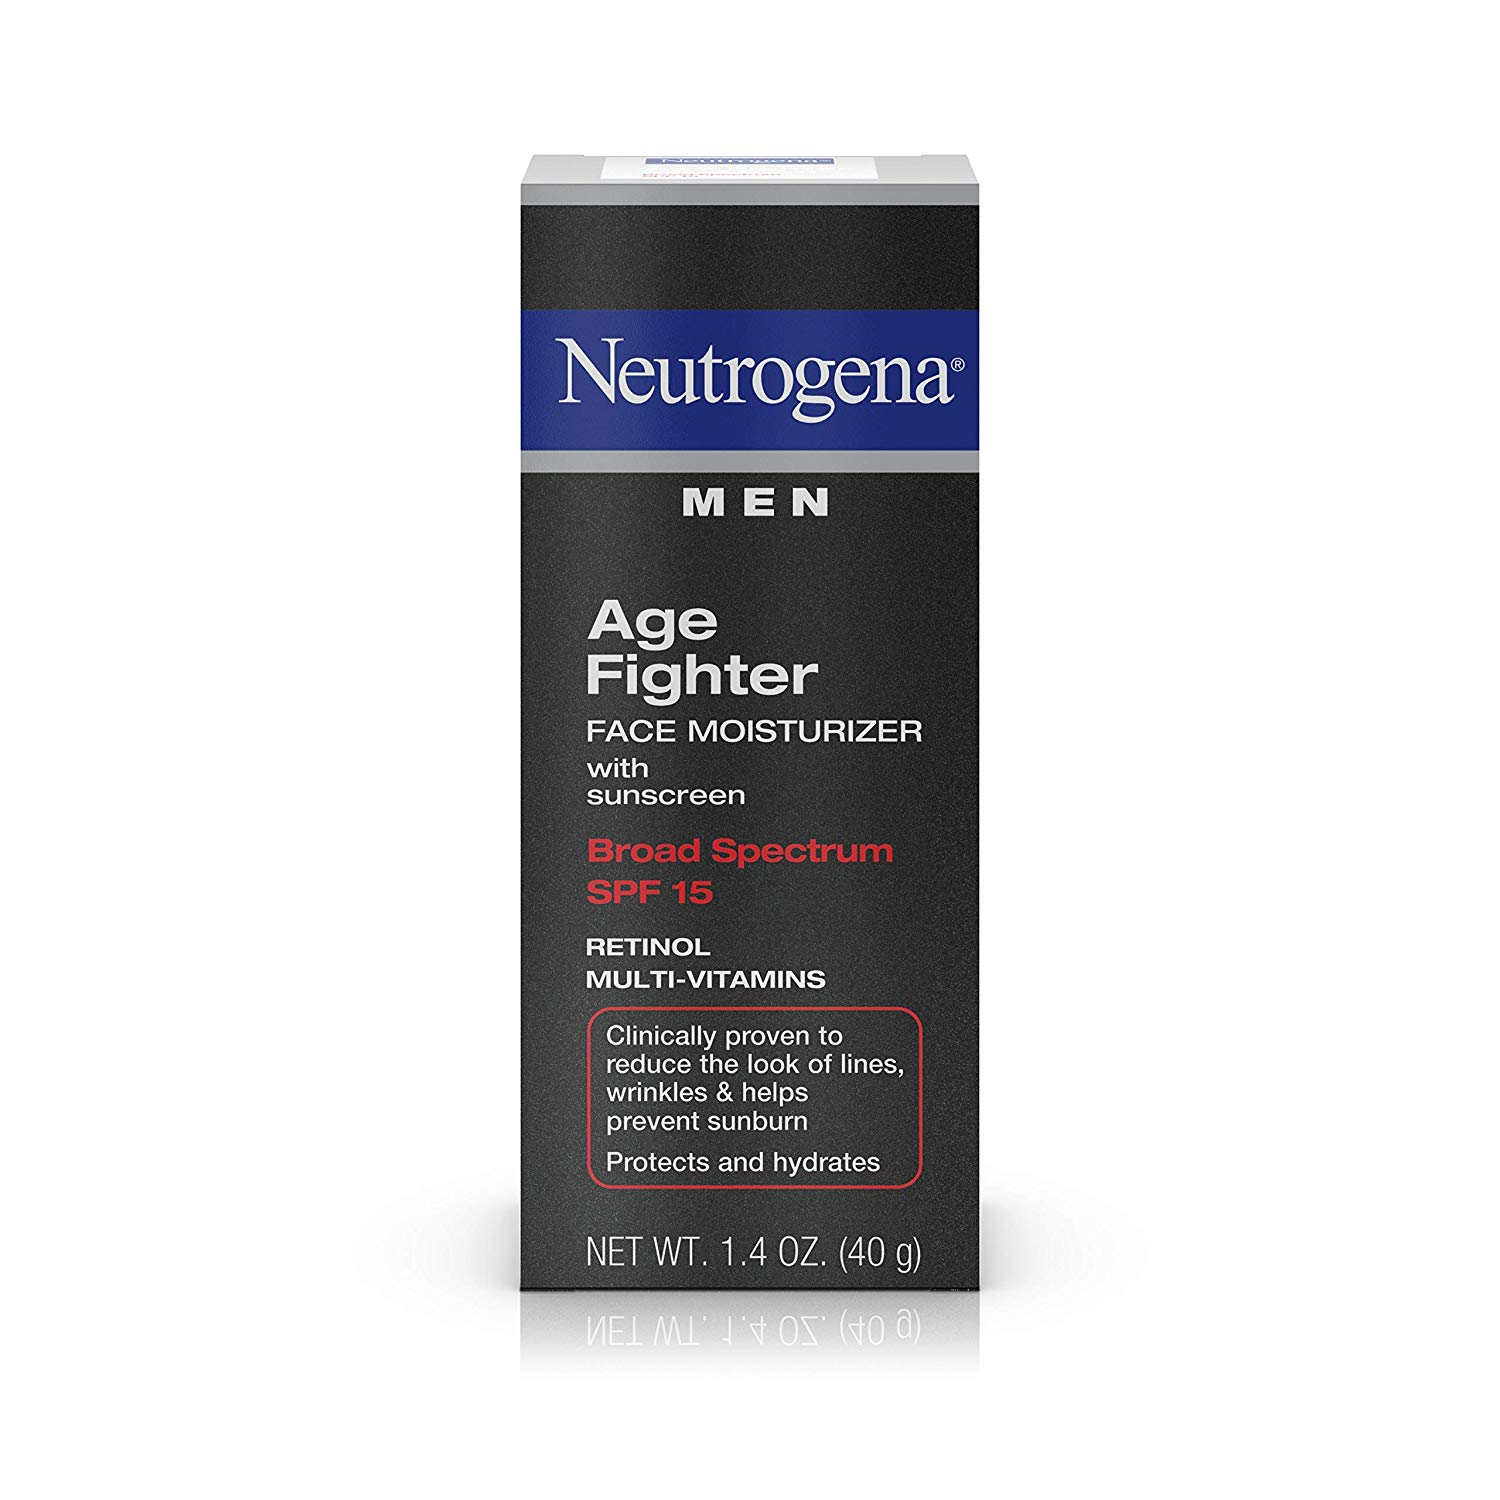 Neutrogena men antiaging